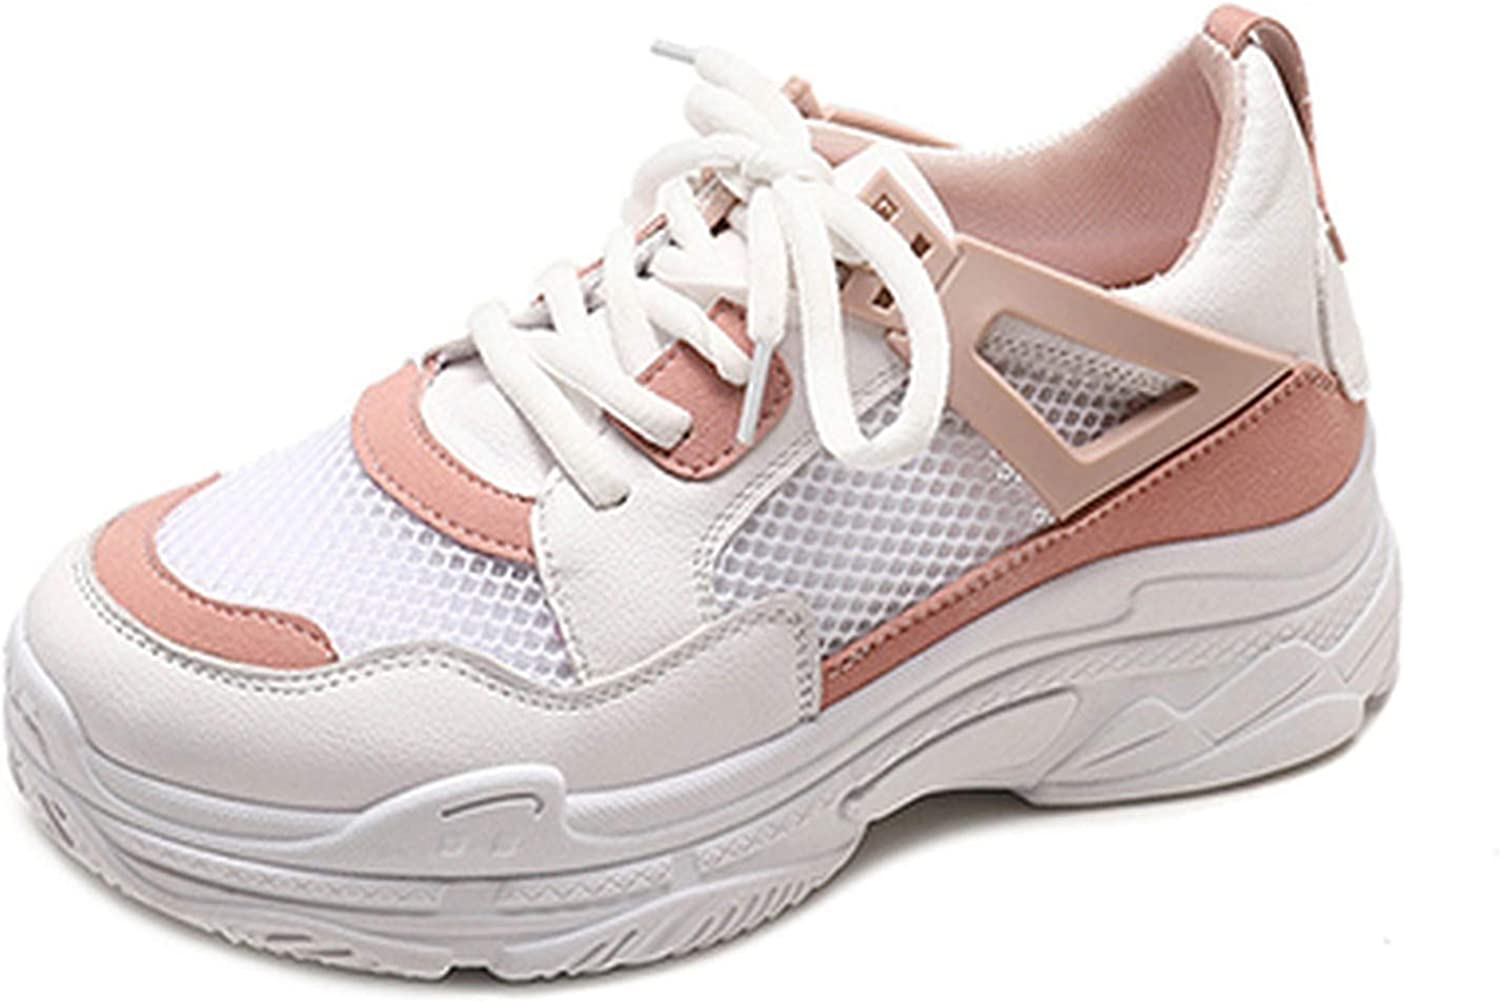 Little Happiness- 2019 Fashion Breathable Mesh Women Sneakers Autumn Non-Slip Casual Woman shoes